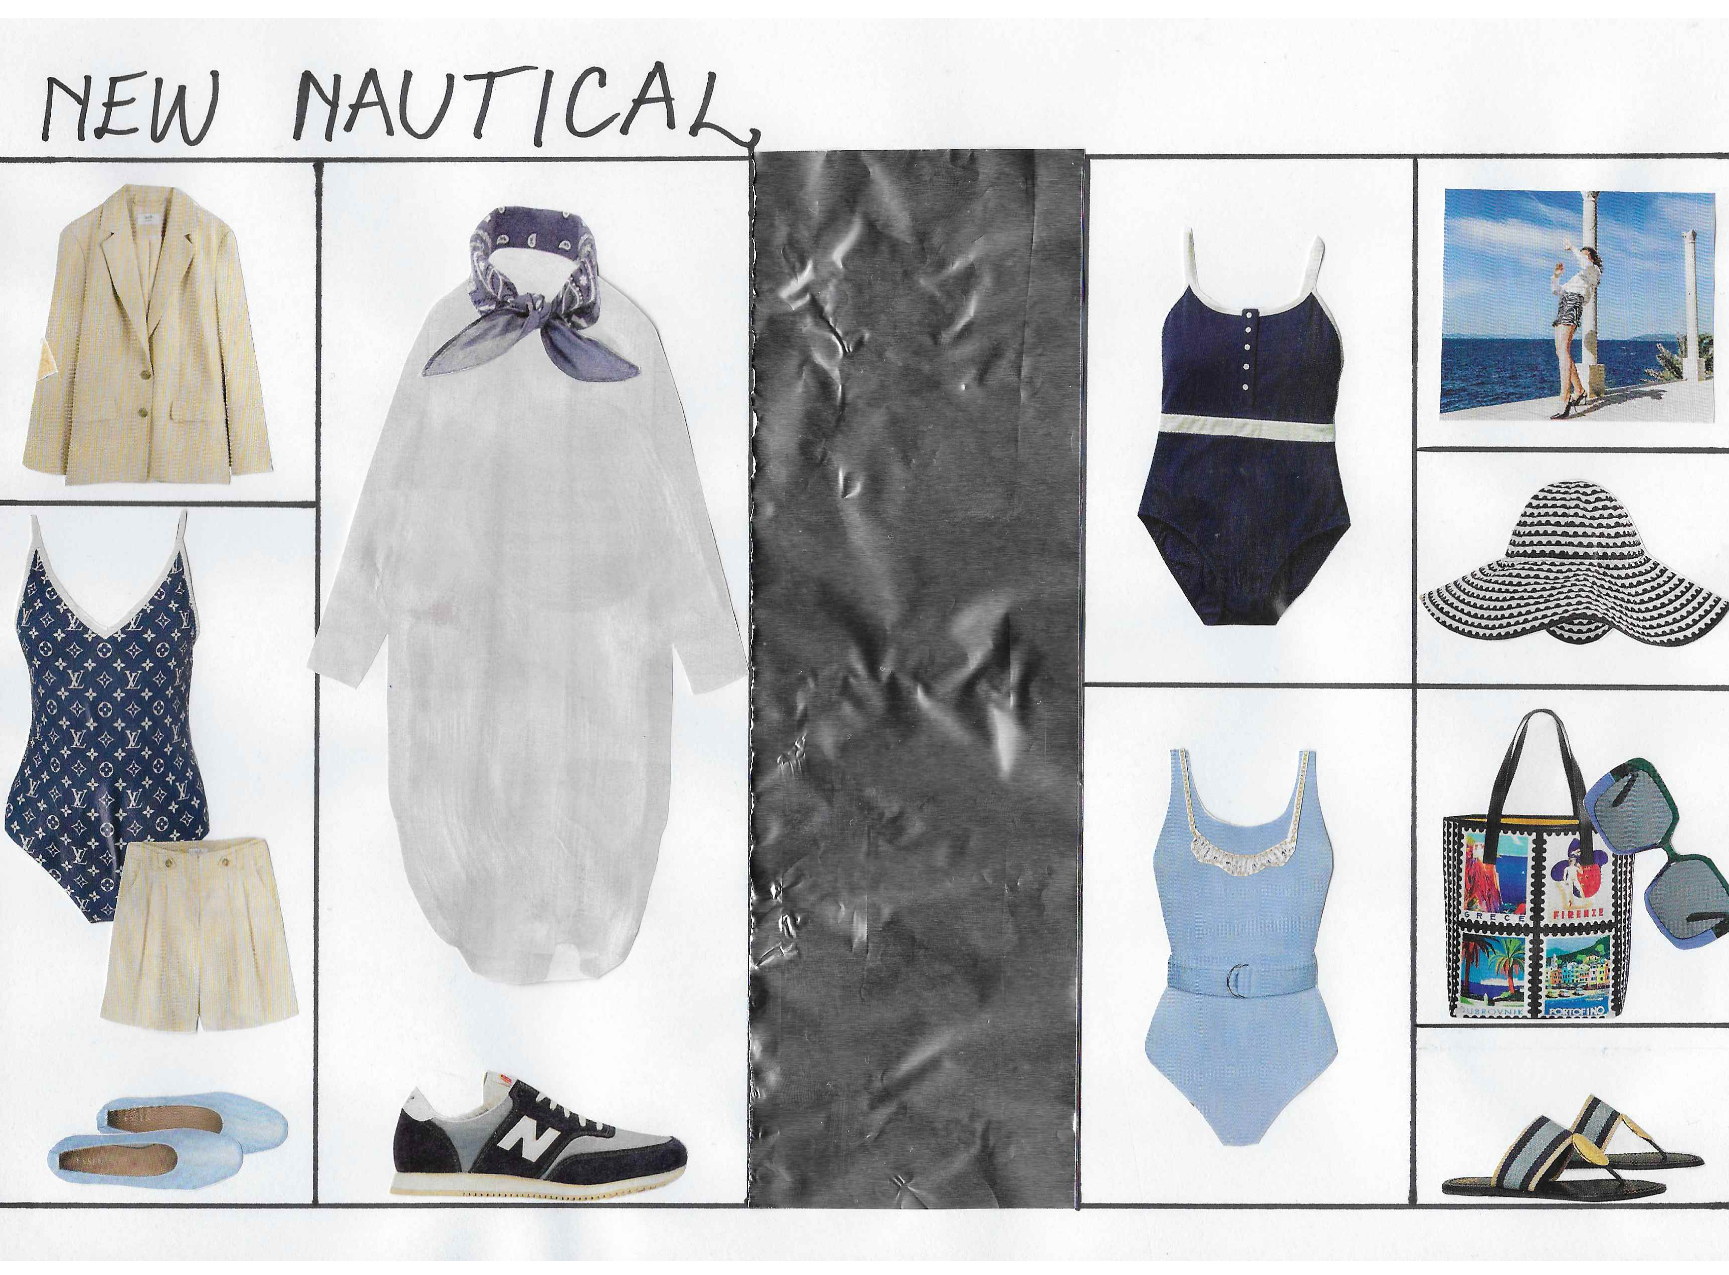 Moodboard design for nautical themed clothing